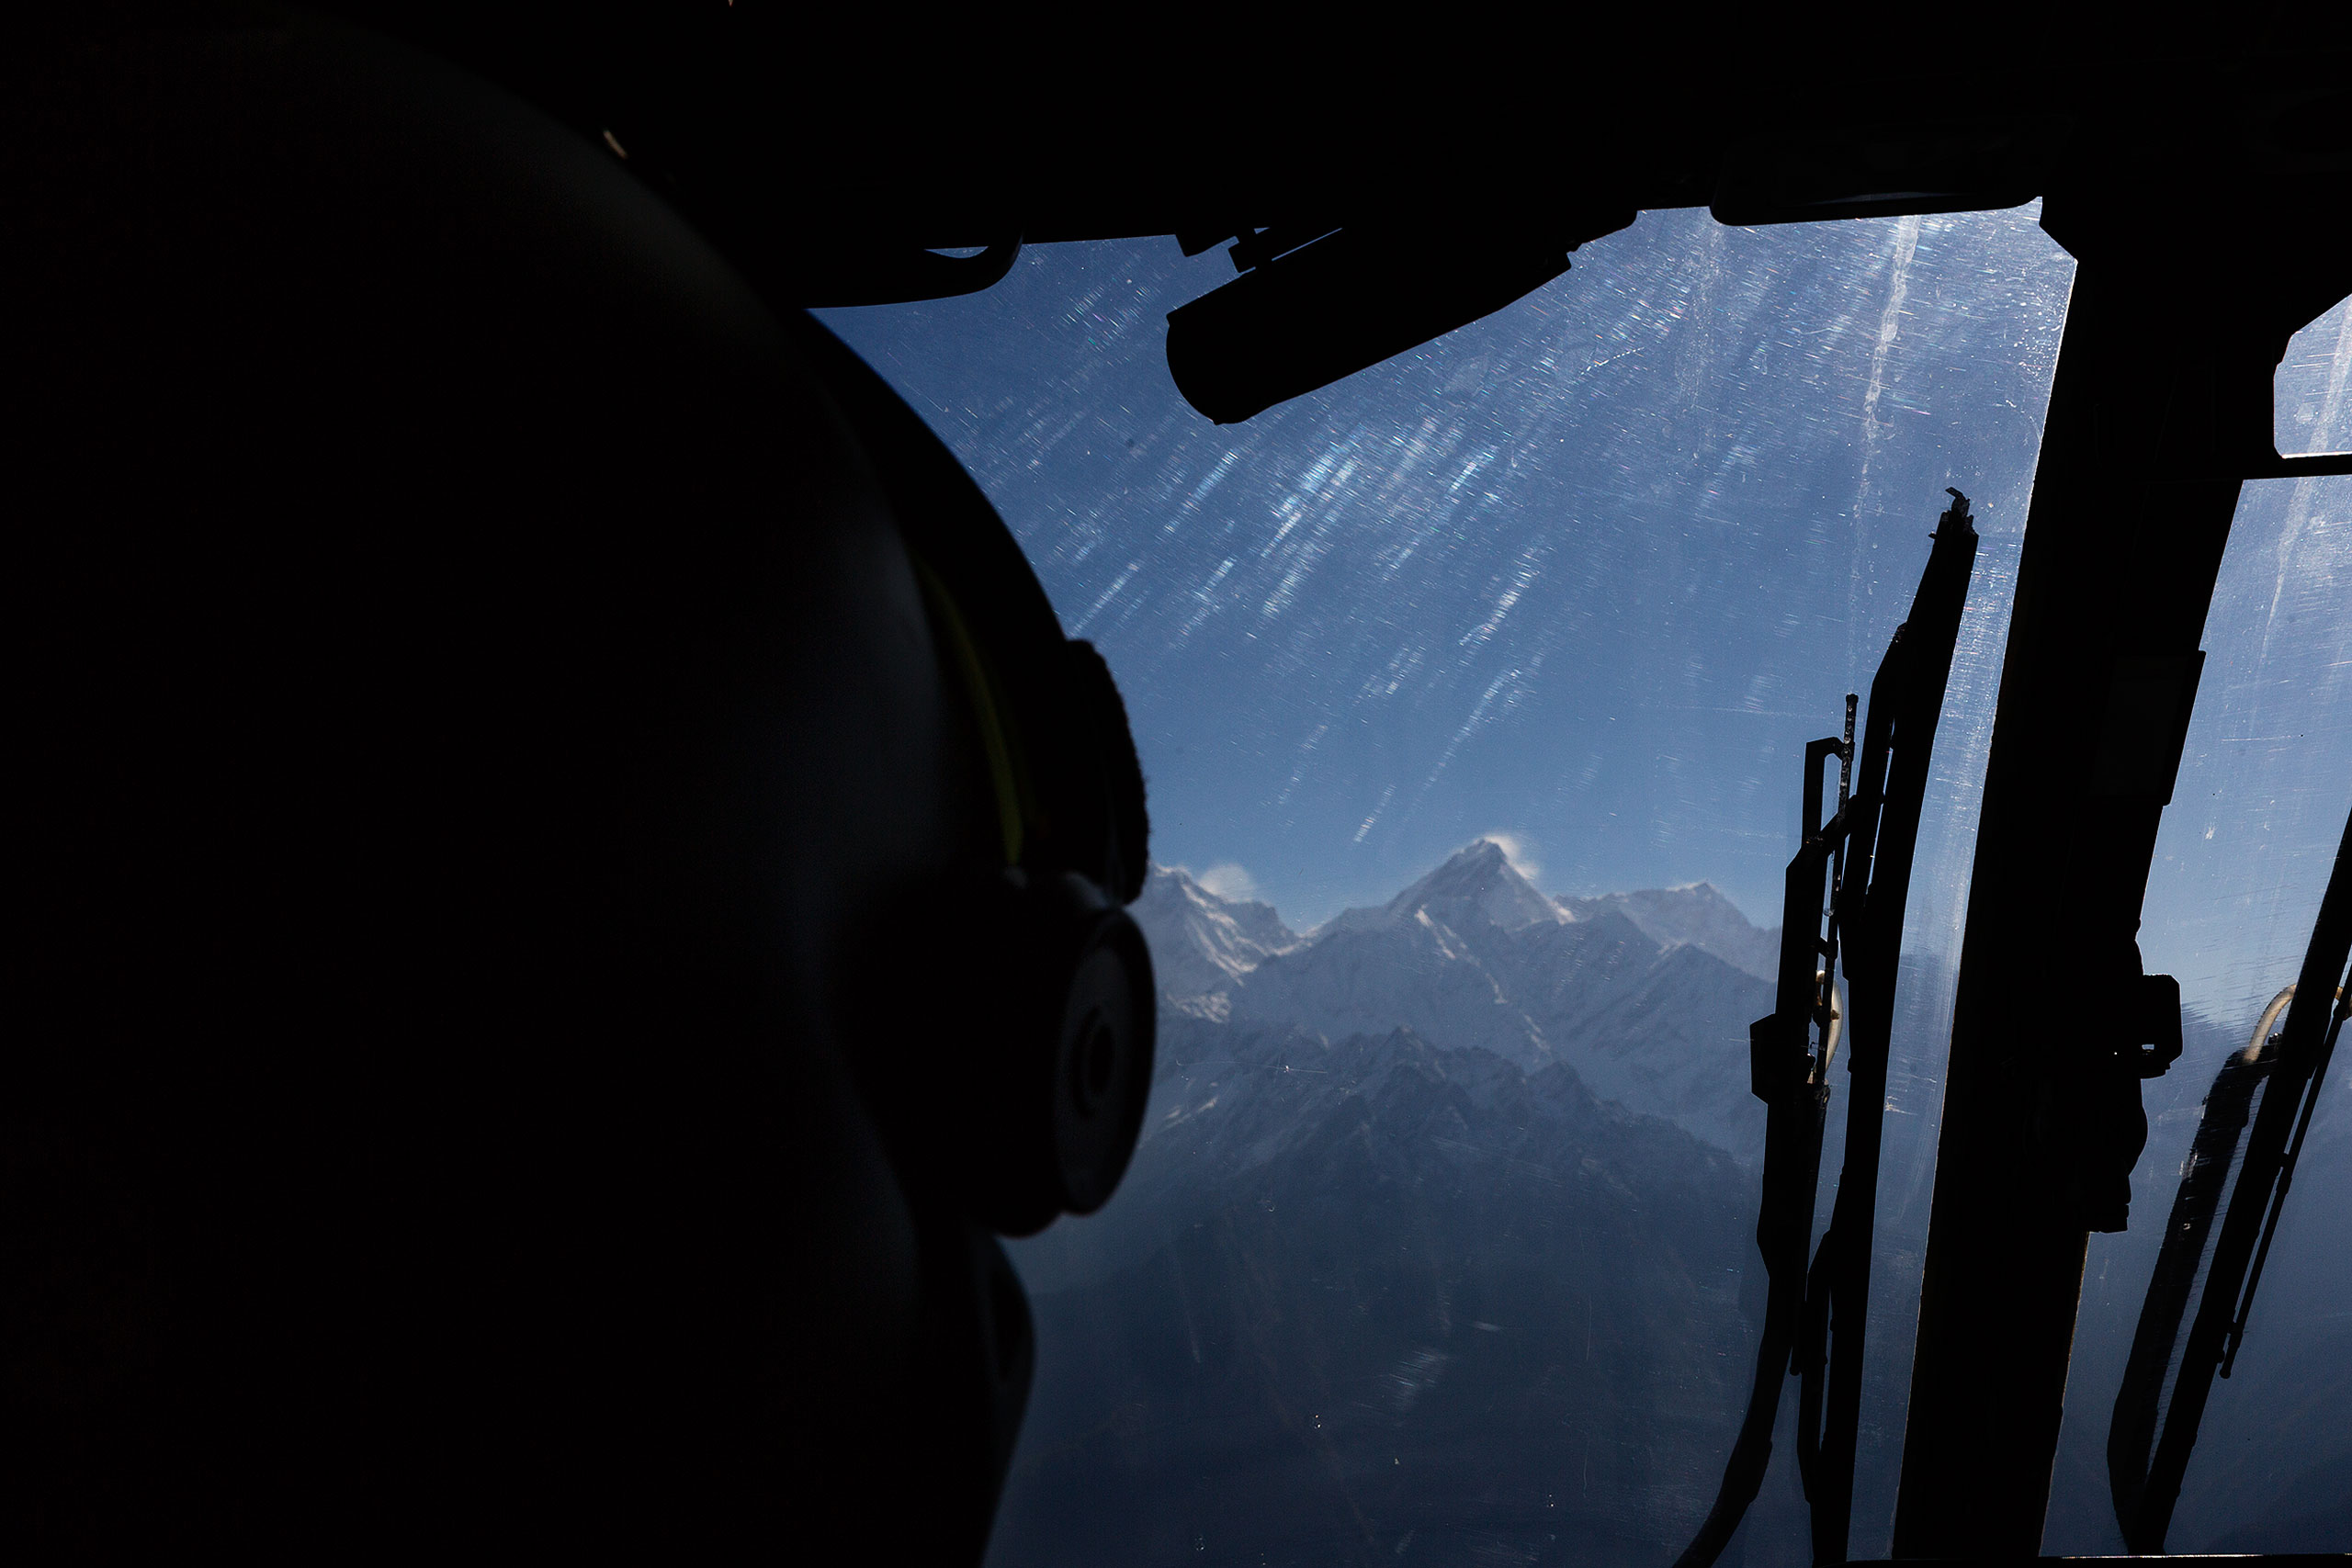 View from the window of a helicopter during relief operations to remote mountain villages in Nepal, May 2, 2015.